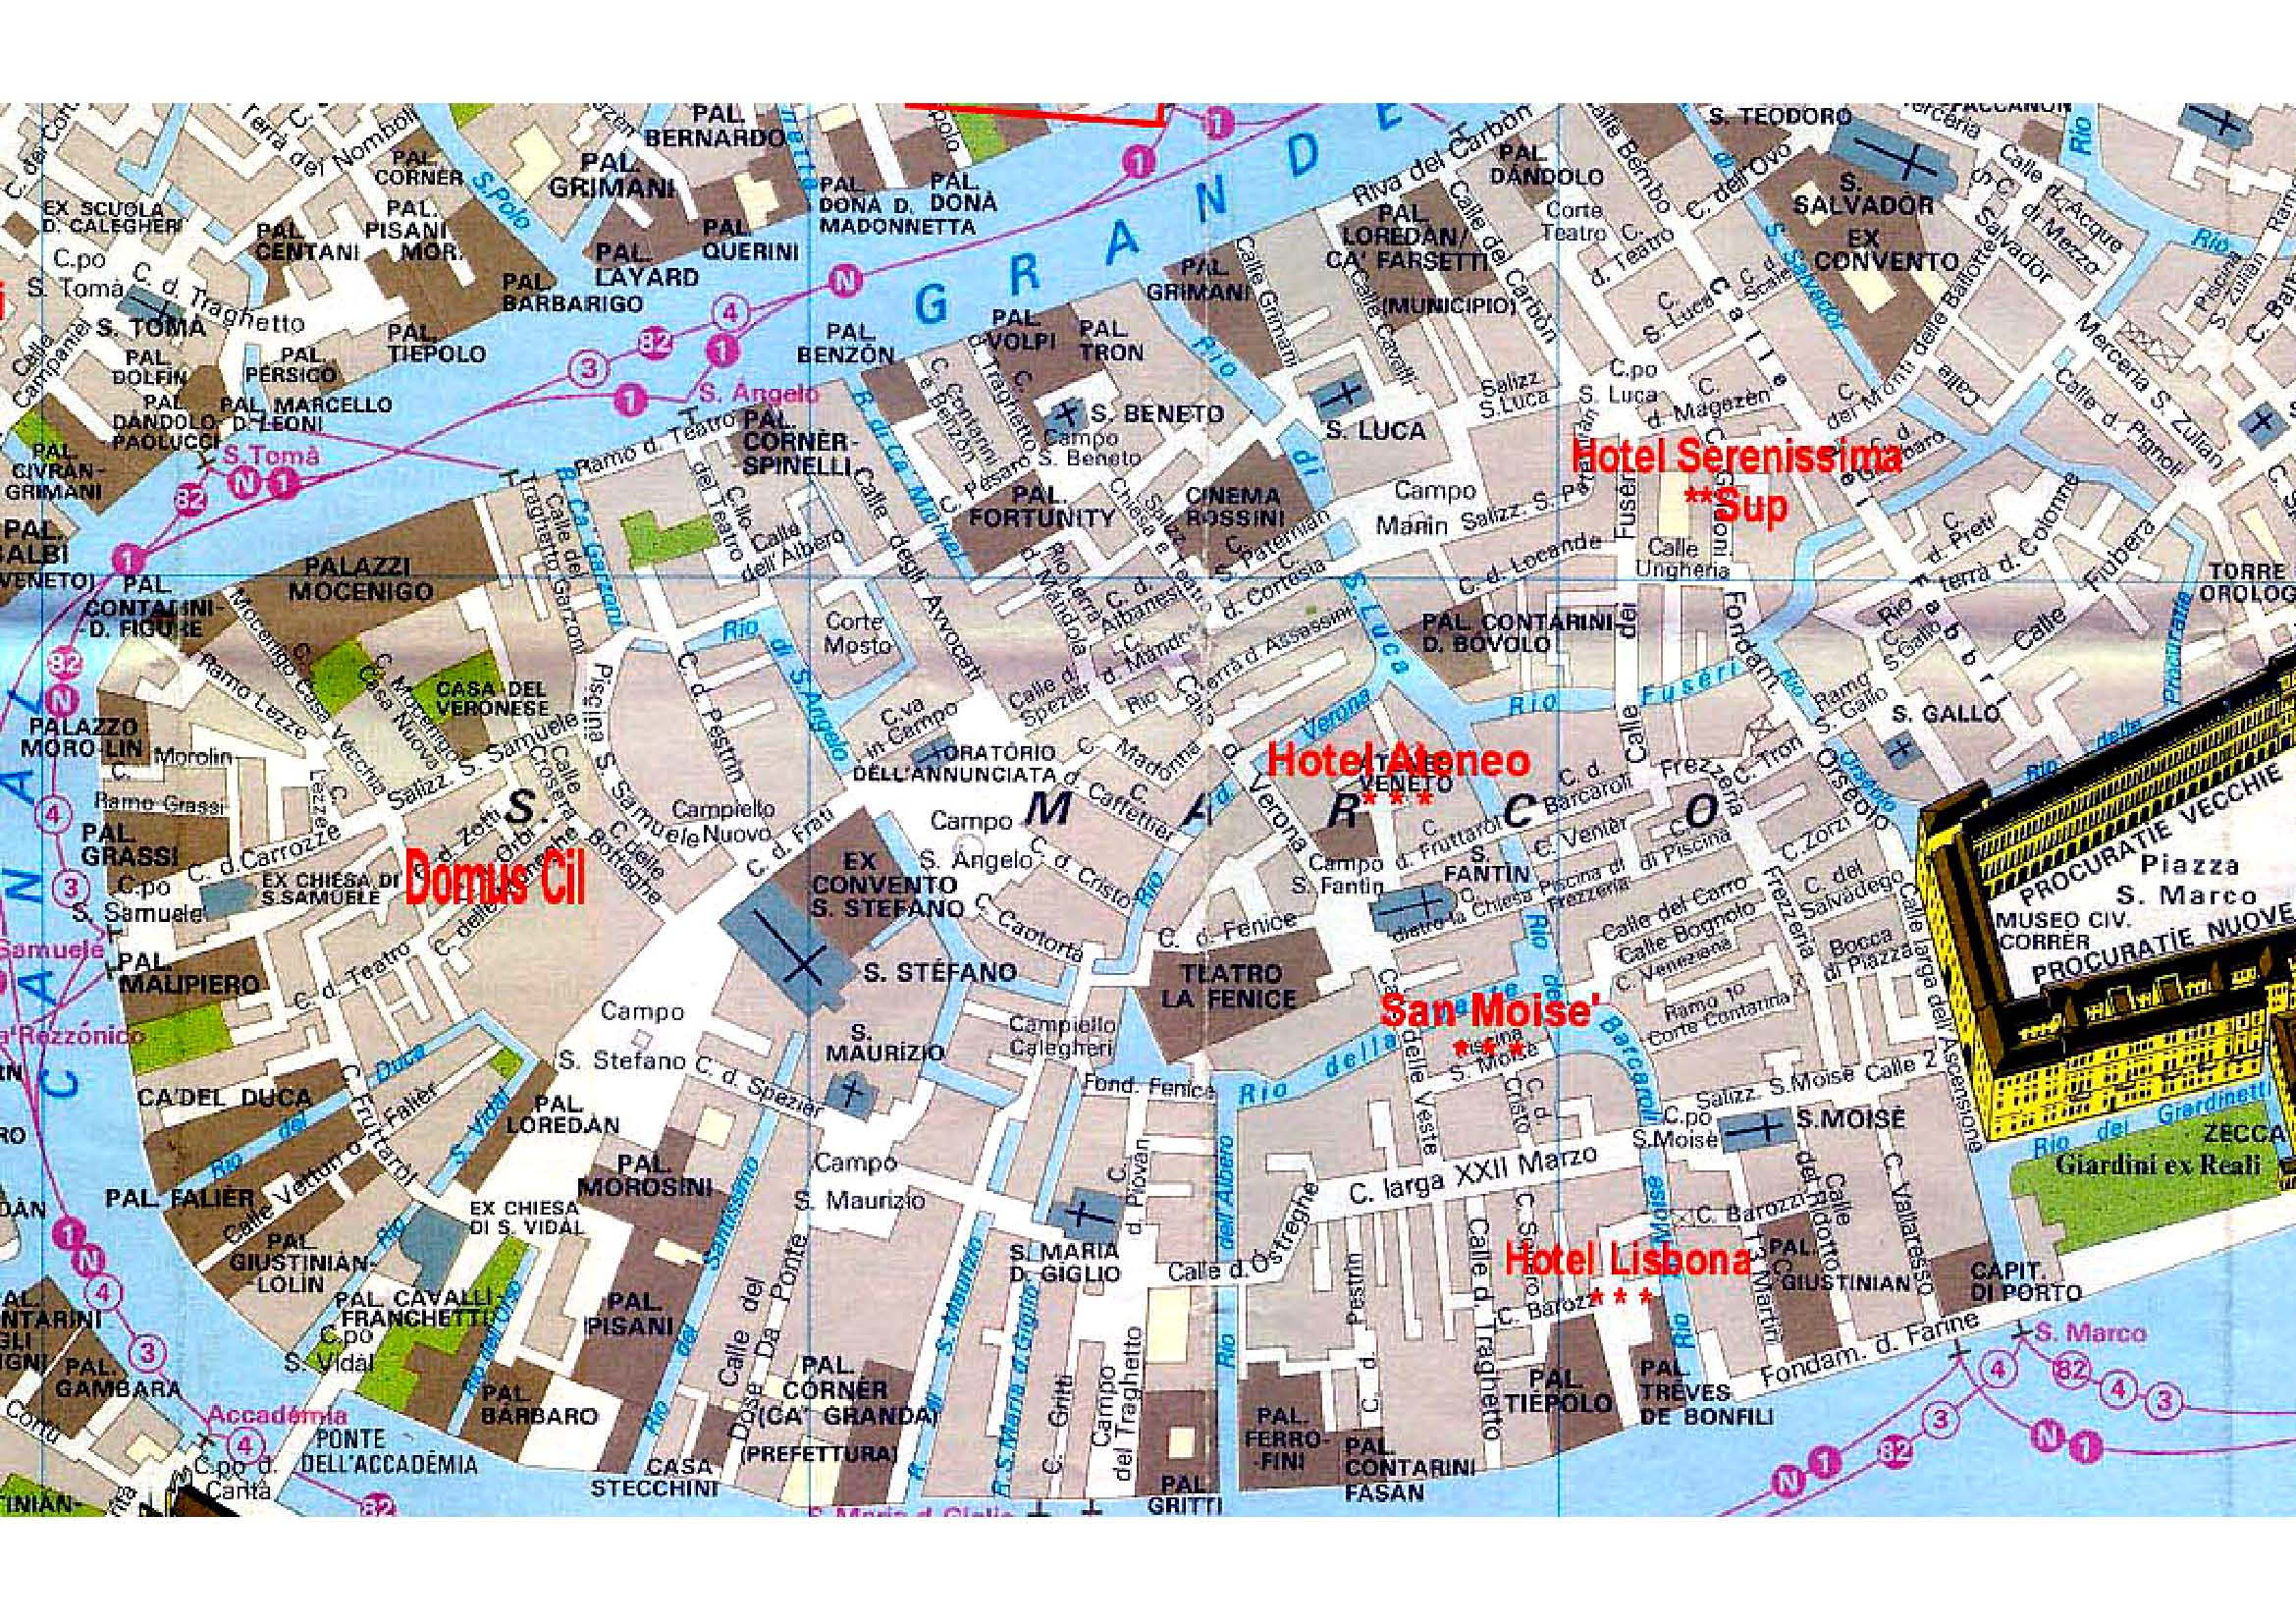 Washington Dc Tourist Map Pdf On Washington Images Lets Explore - Washington dc map printable